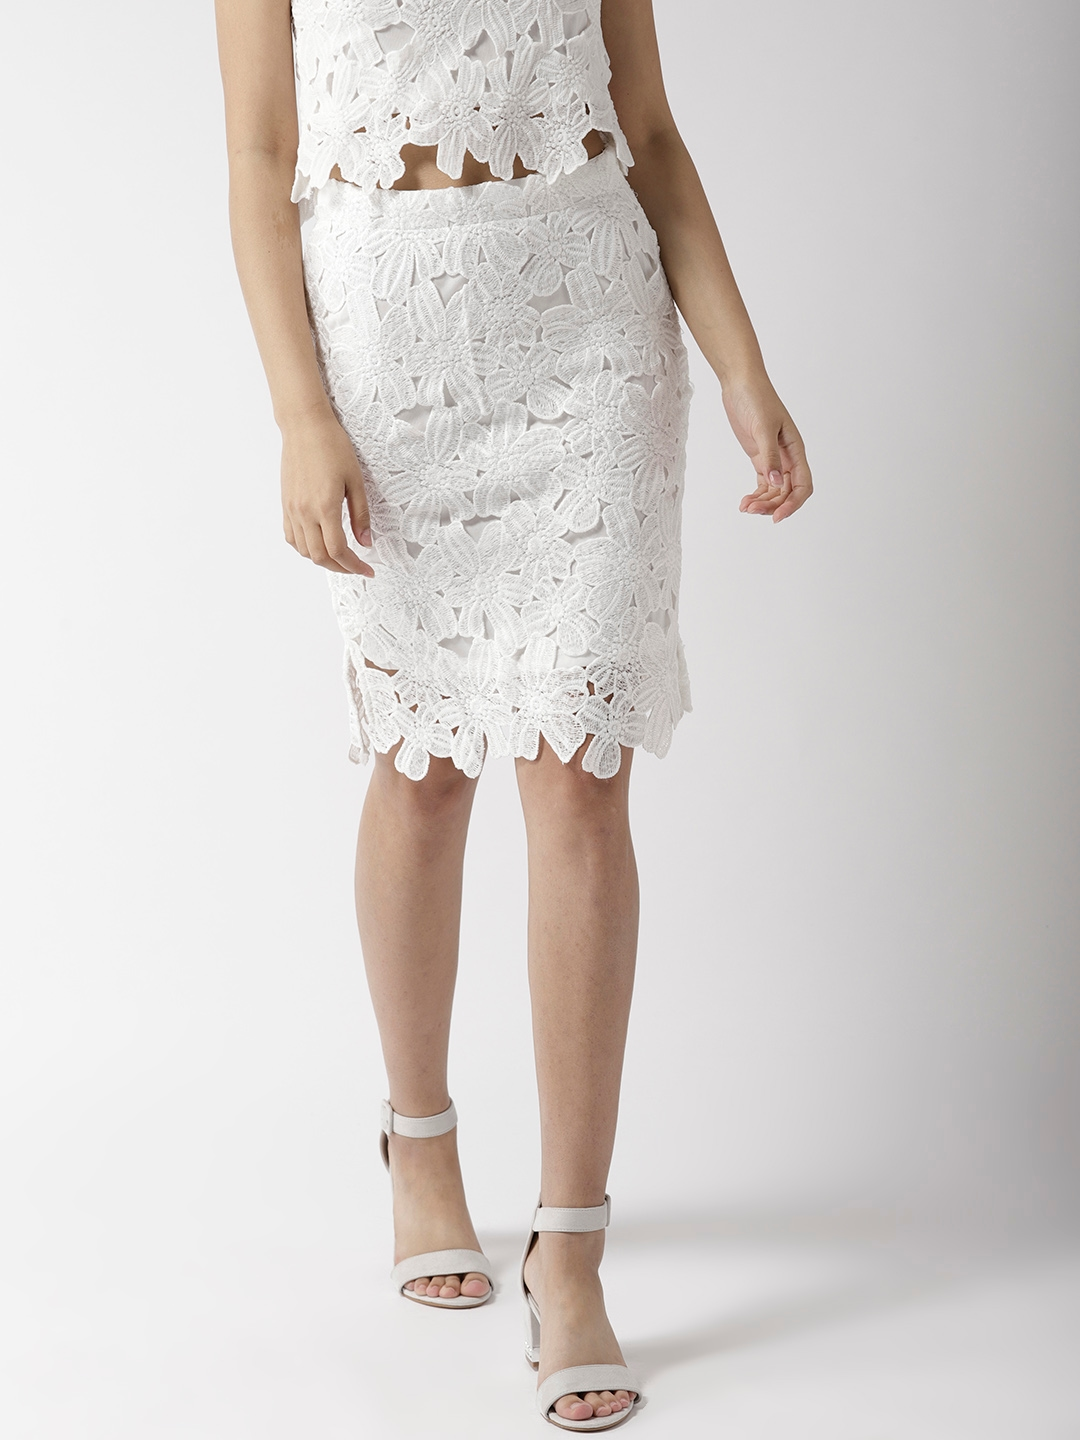 65e2687fdf7b Buy 20Dresses Women White Lace Pencil Skirt - Skirts for Women ...